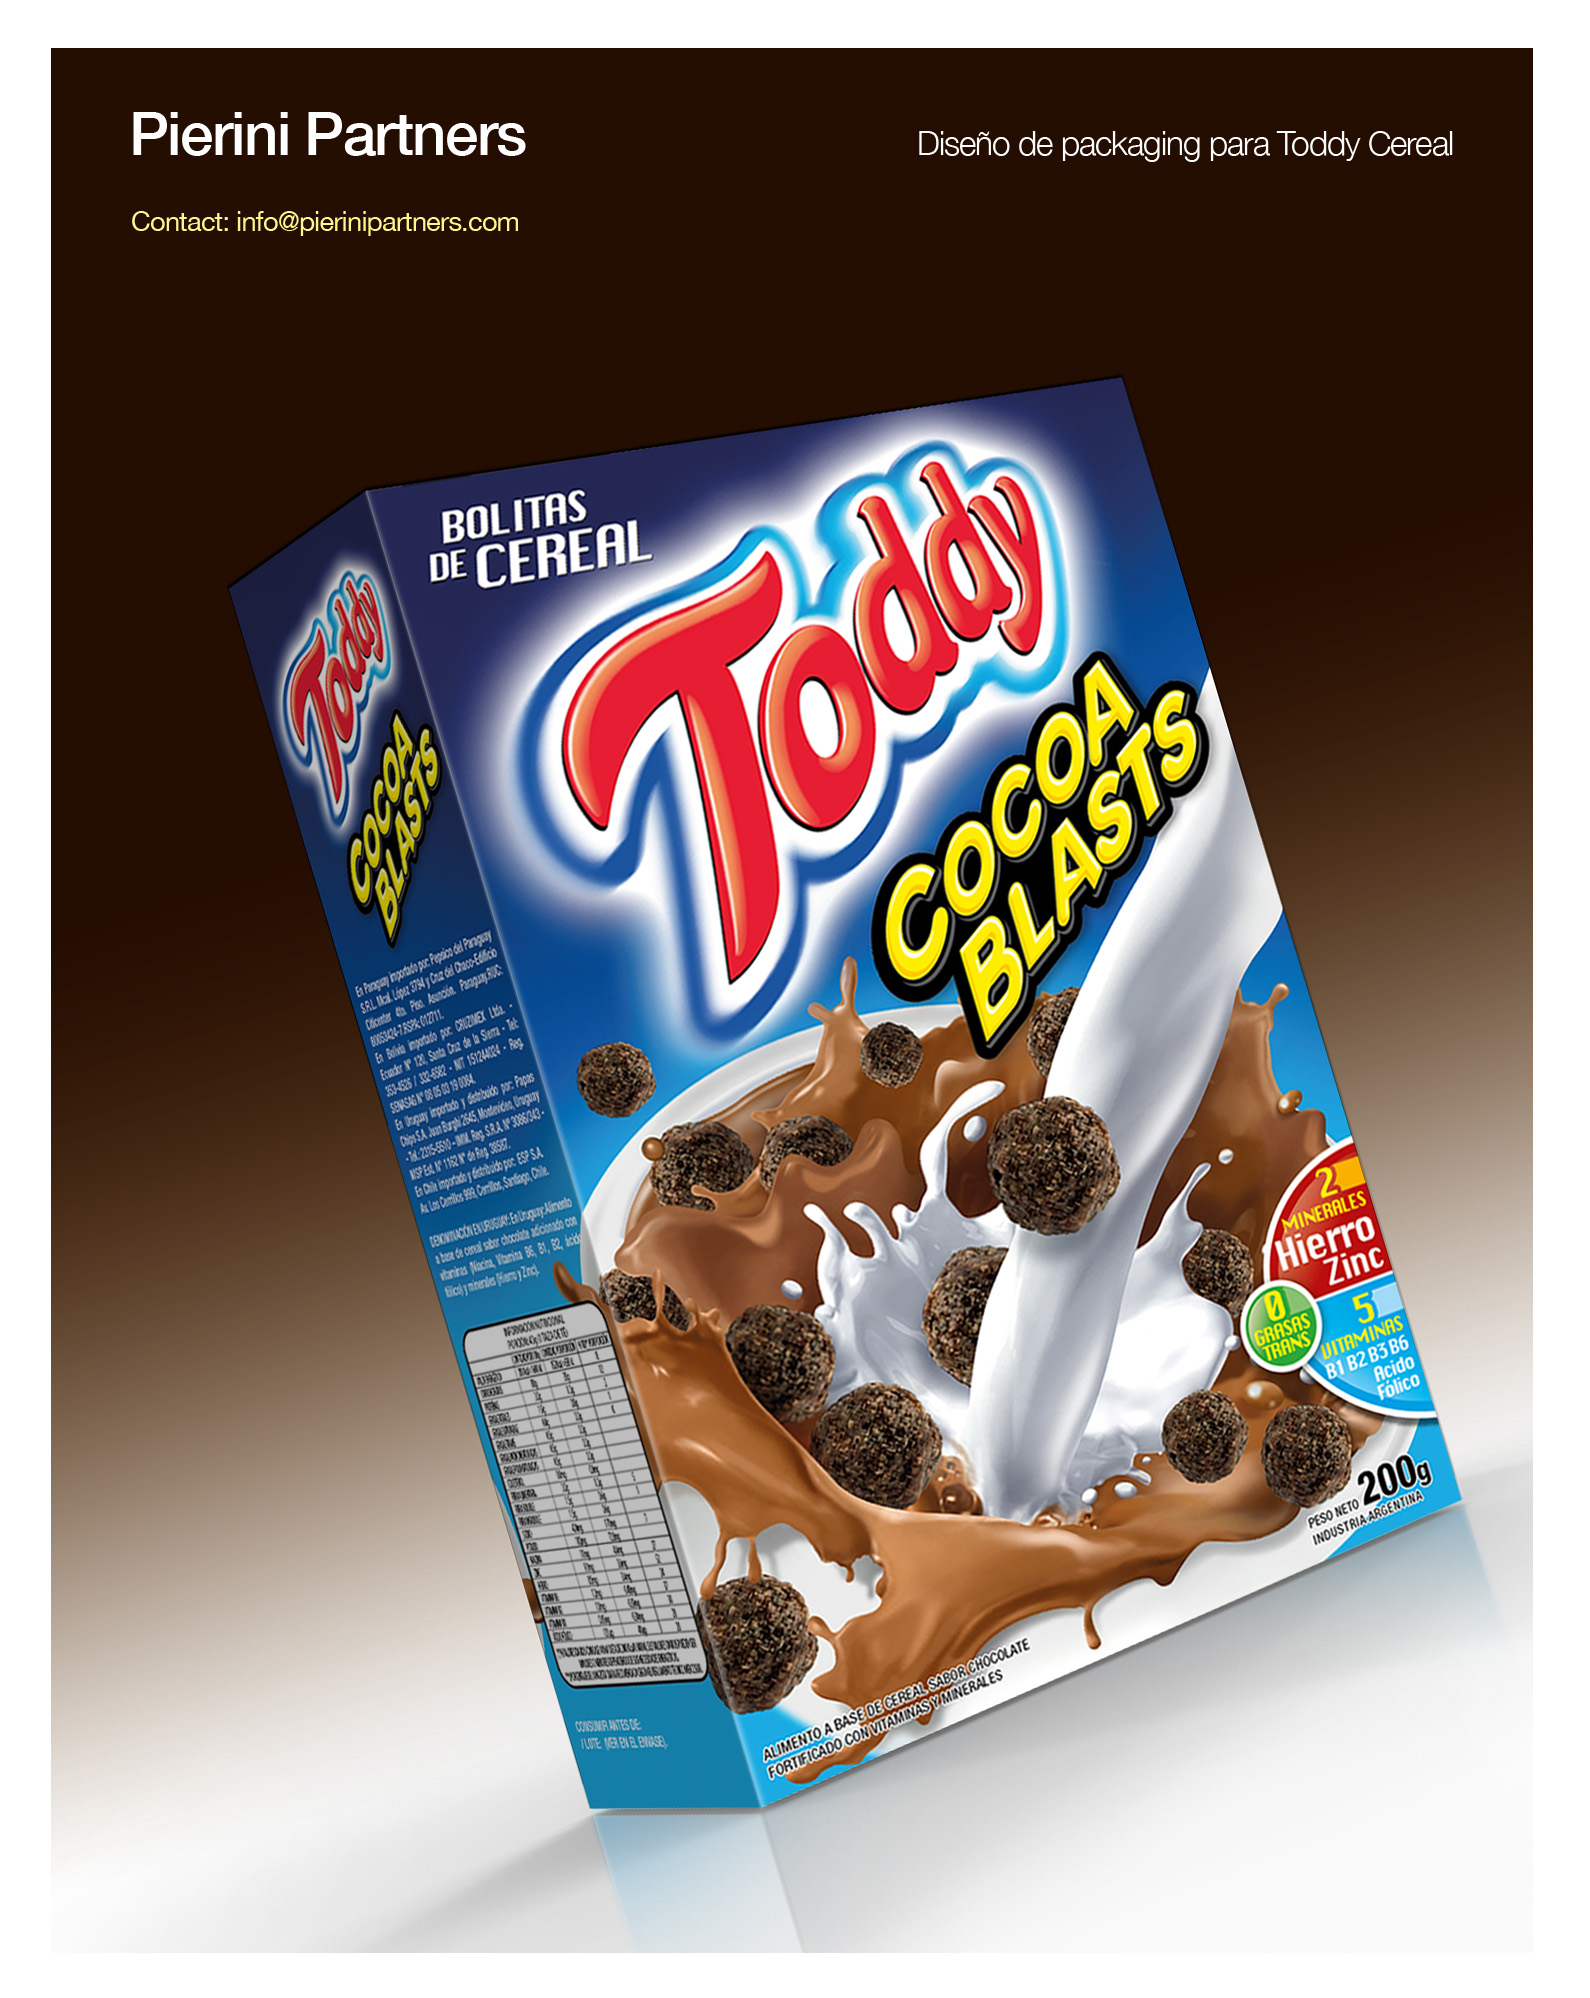 toddy cereal por pierini partners